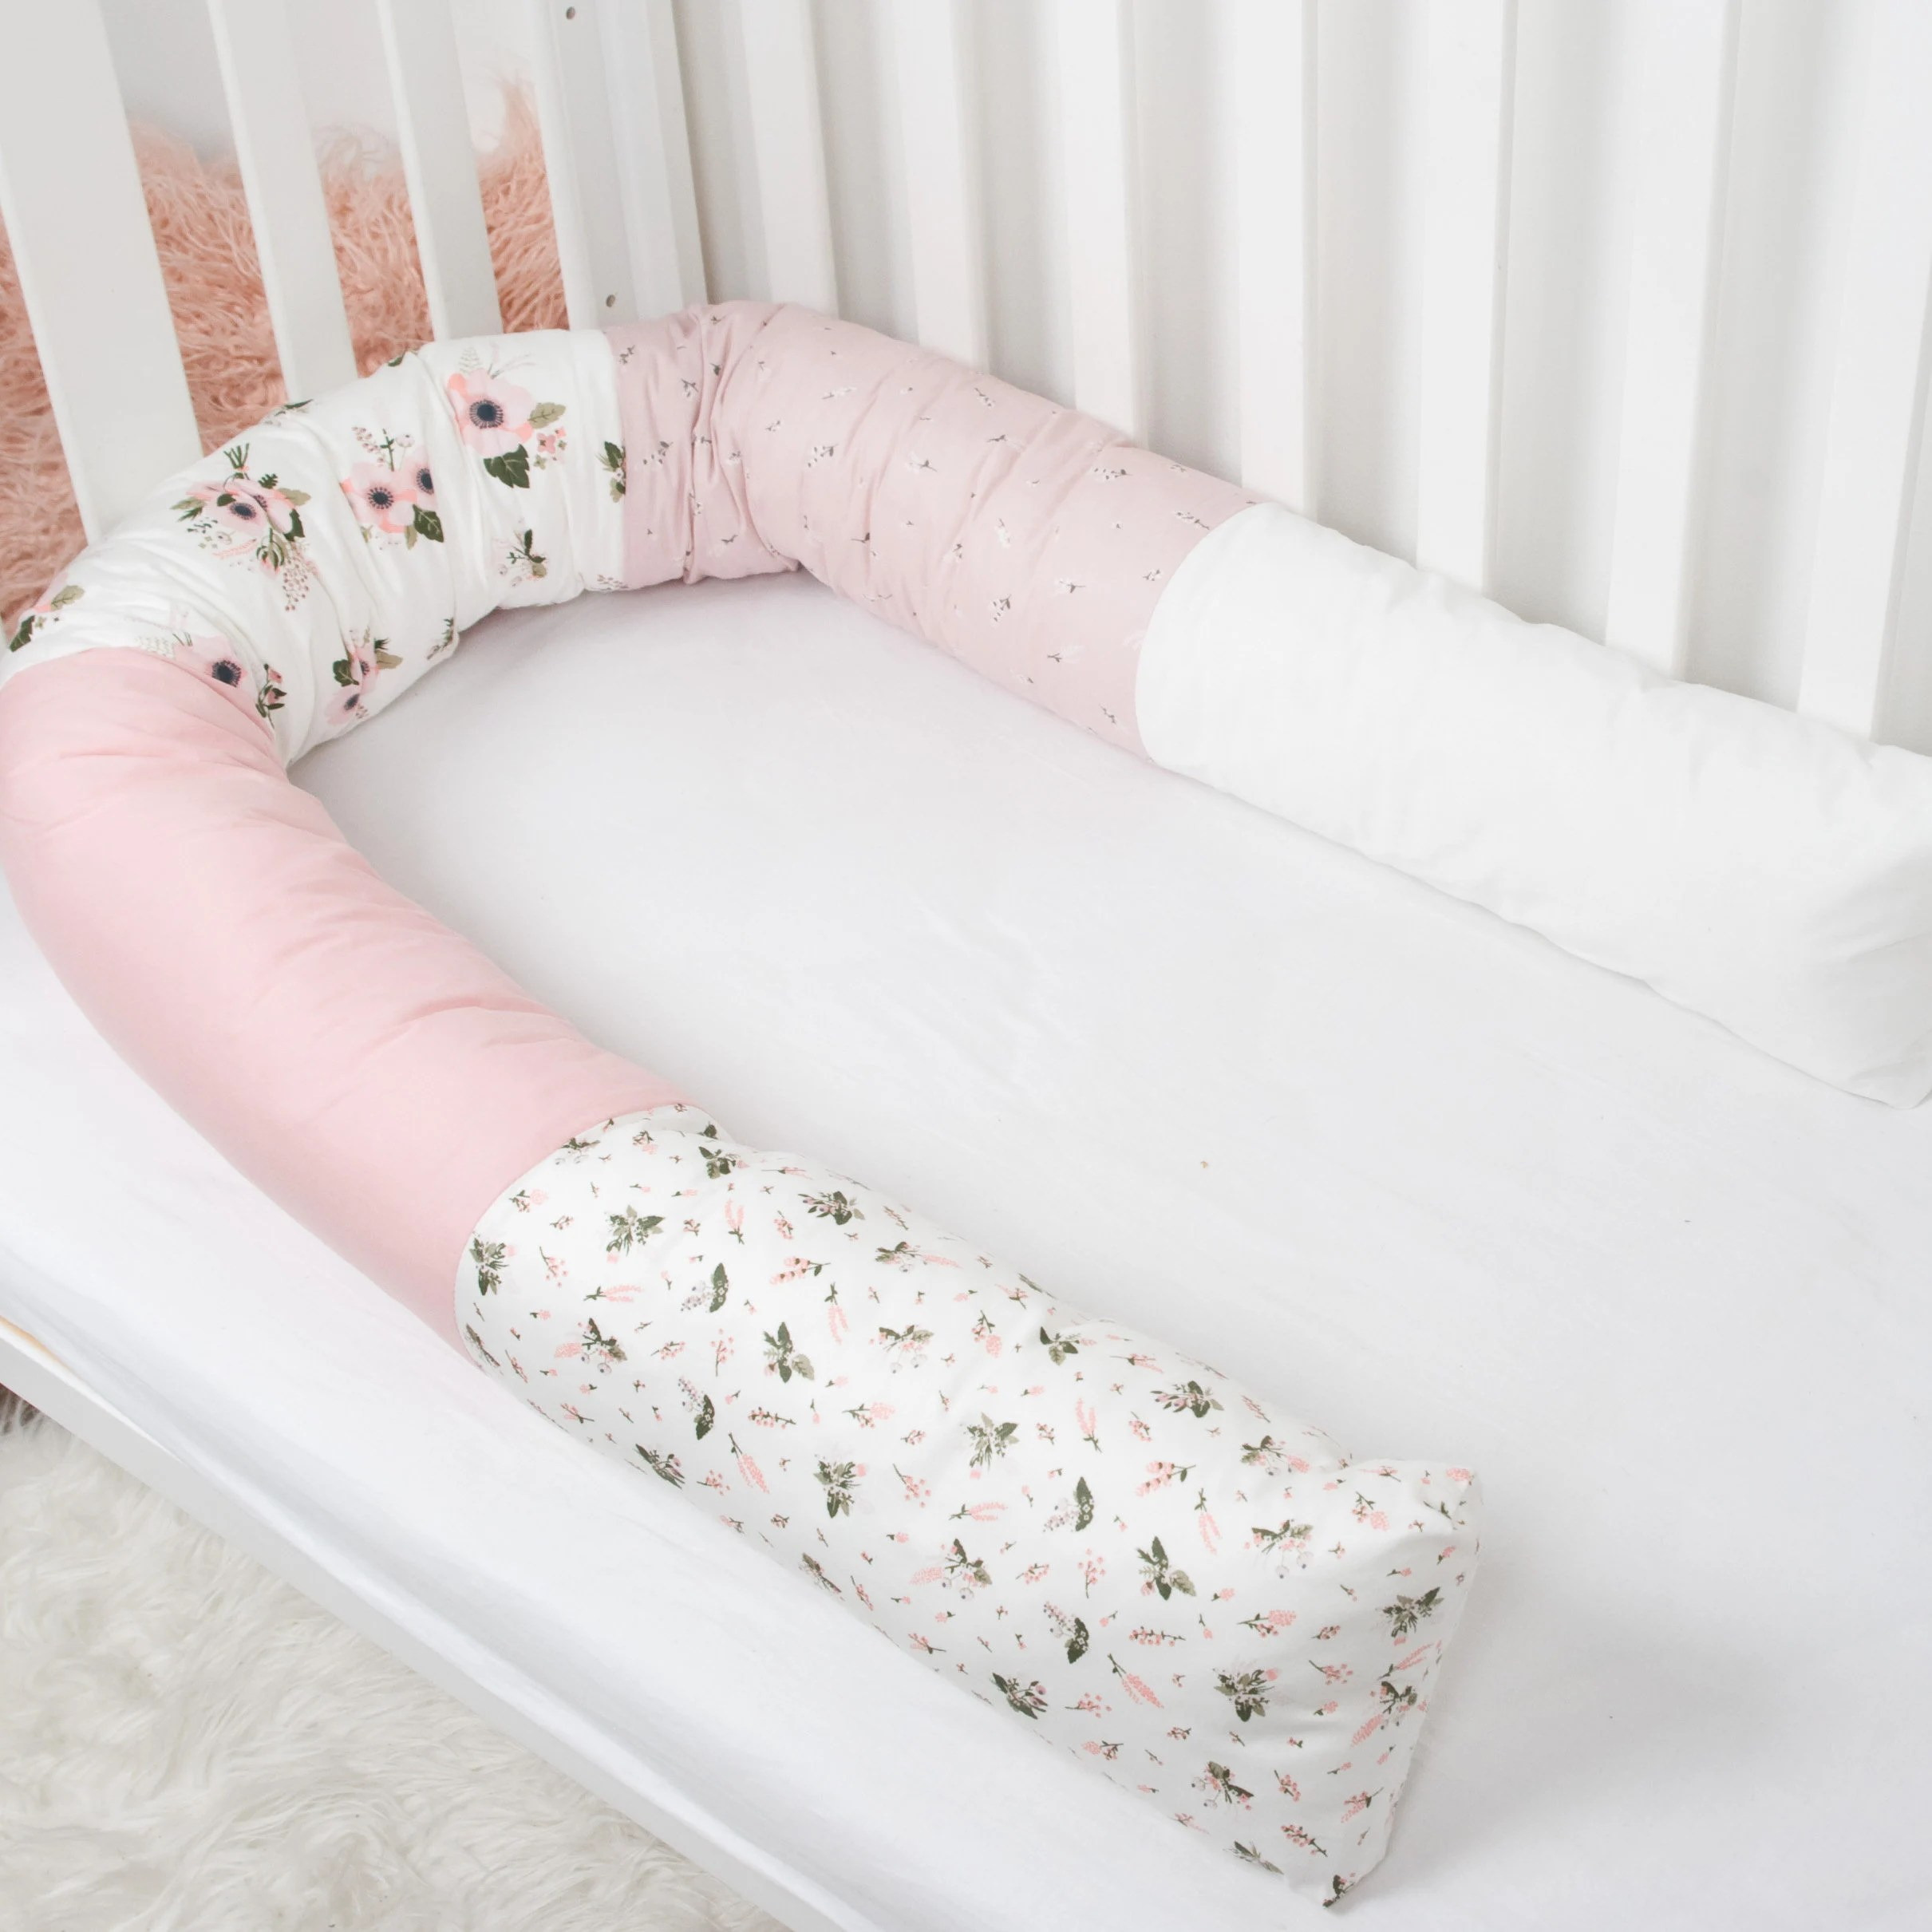 baby body pillow for crib online